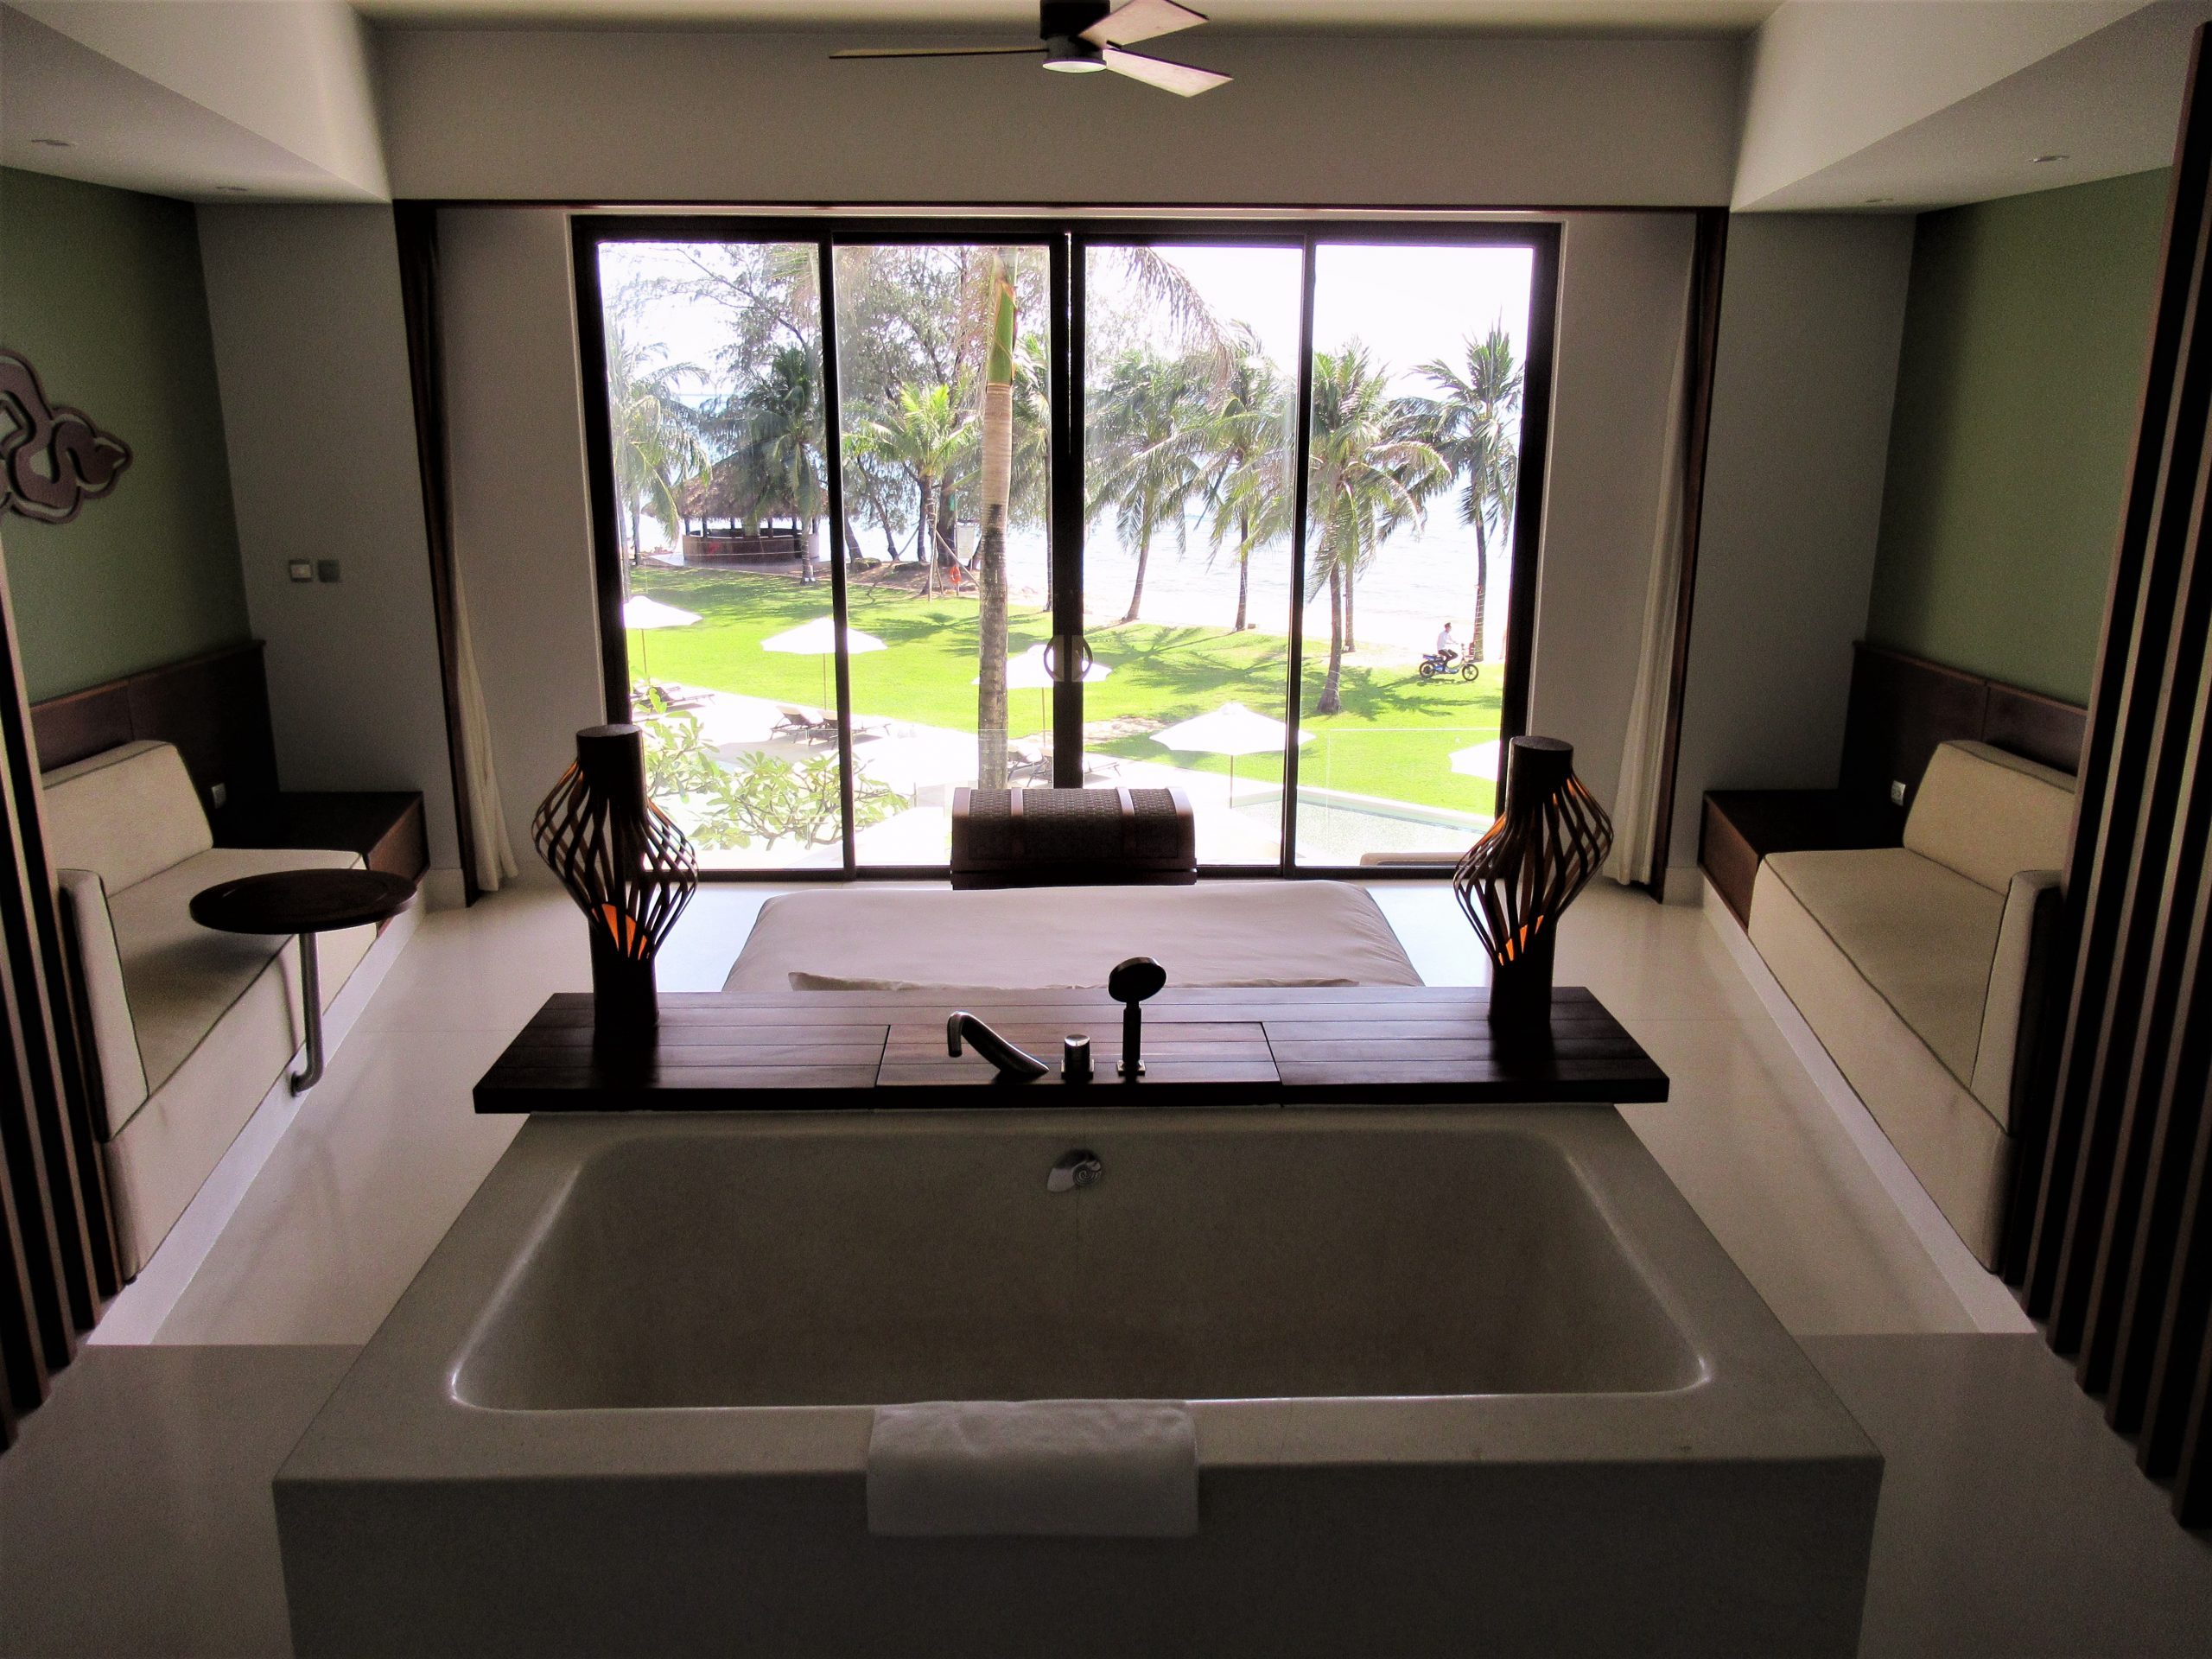 Guest room in main structure, The Shells Resort, Phu Quoc Island, Vietnam